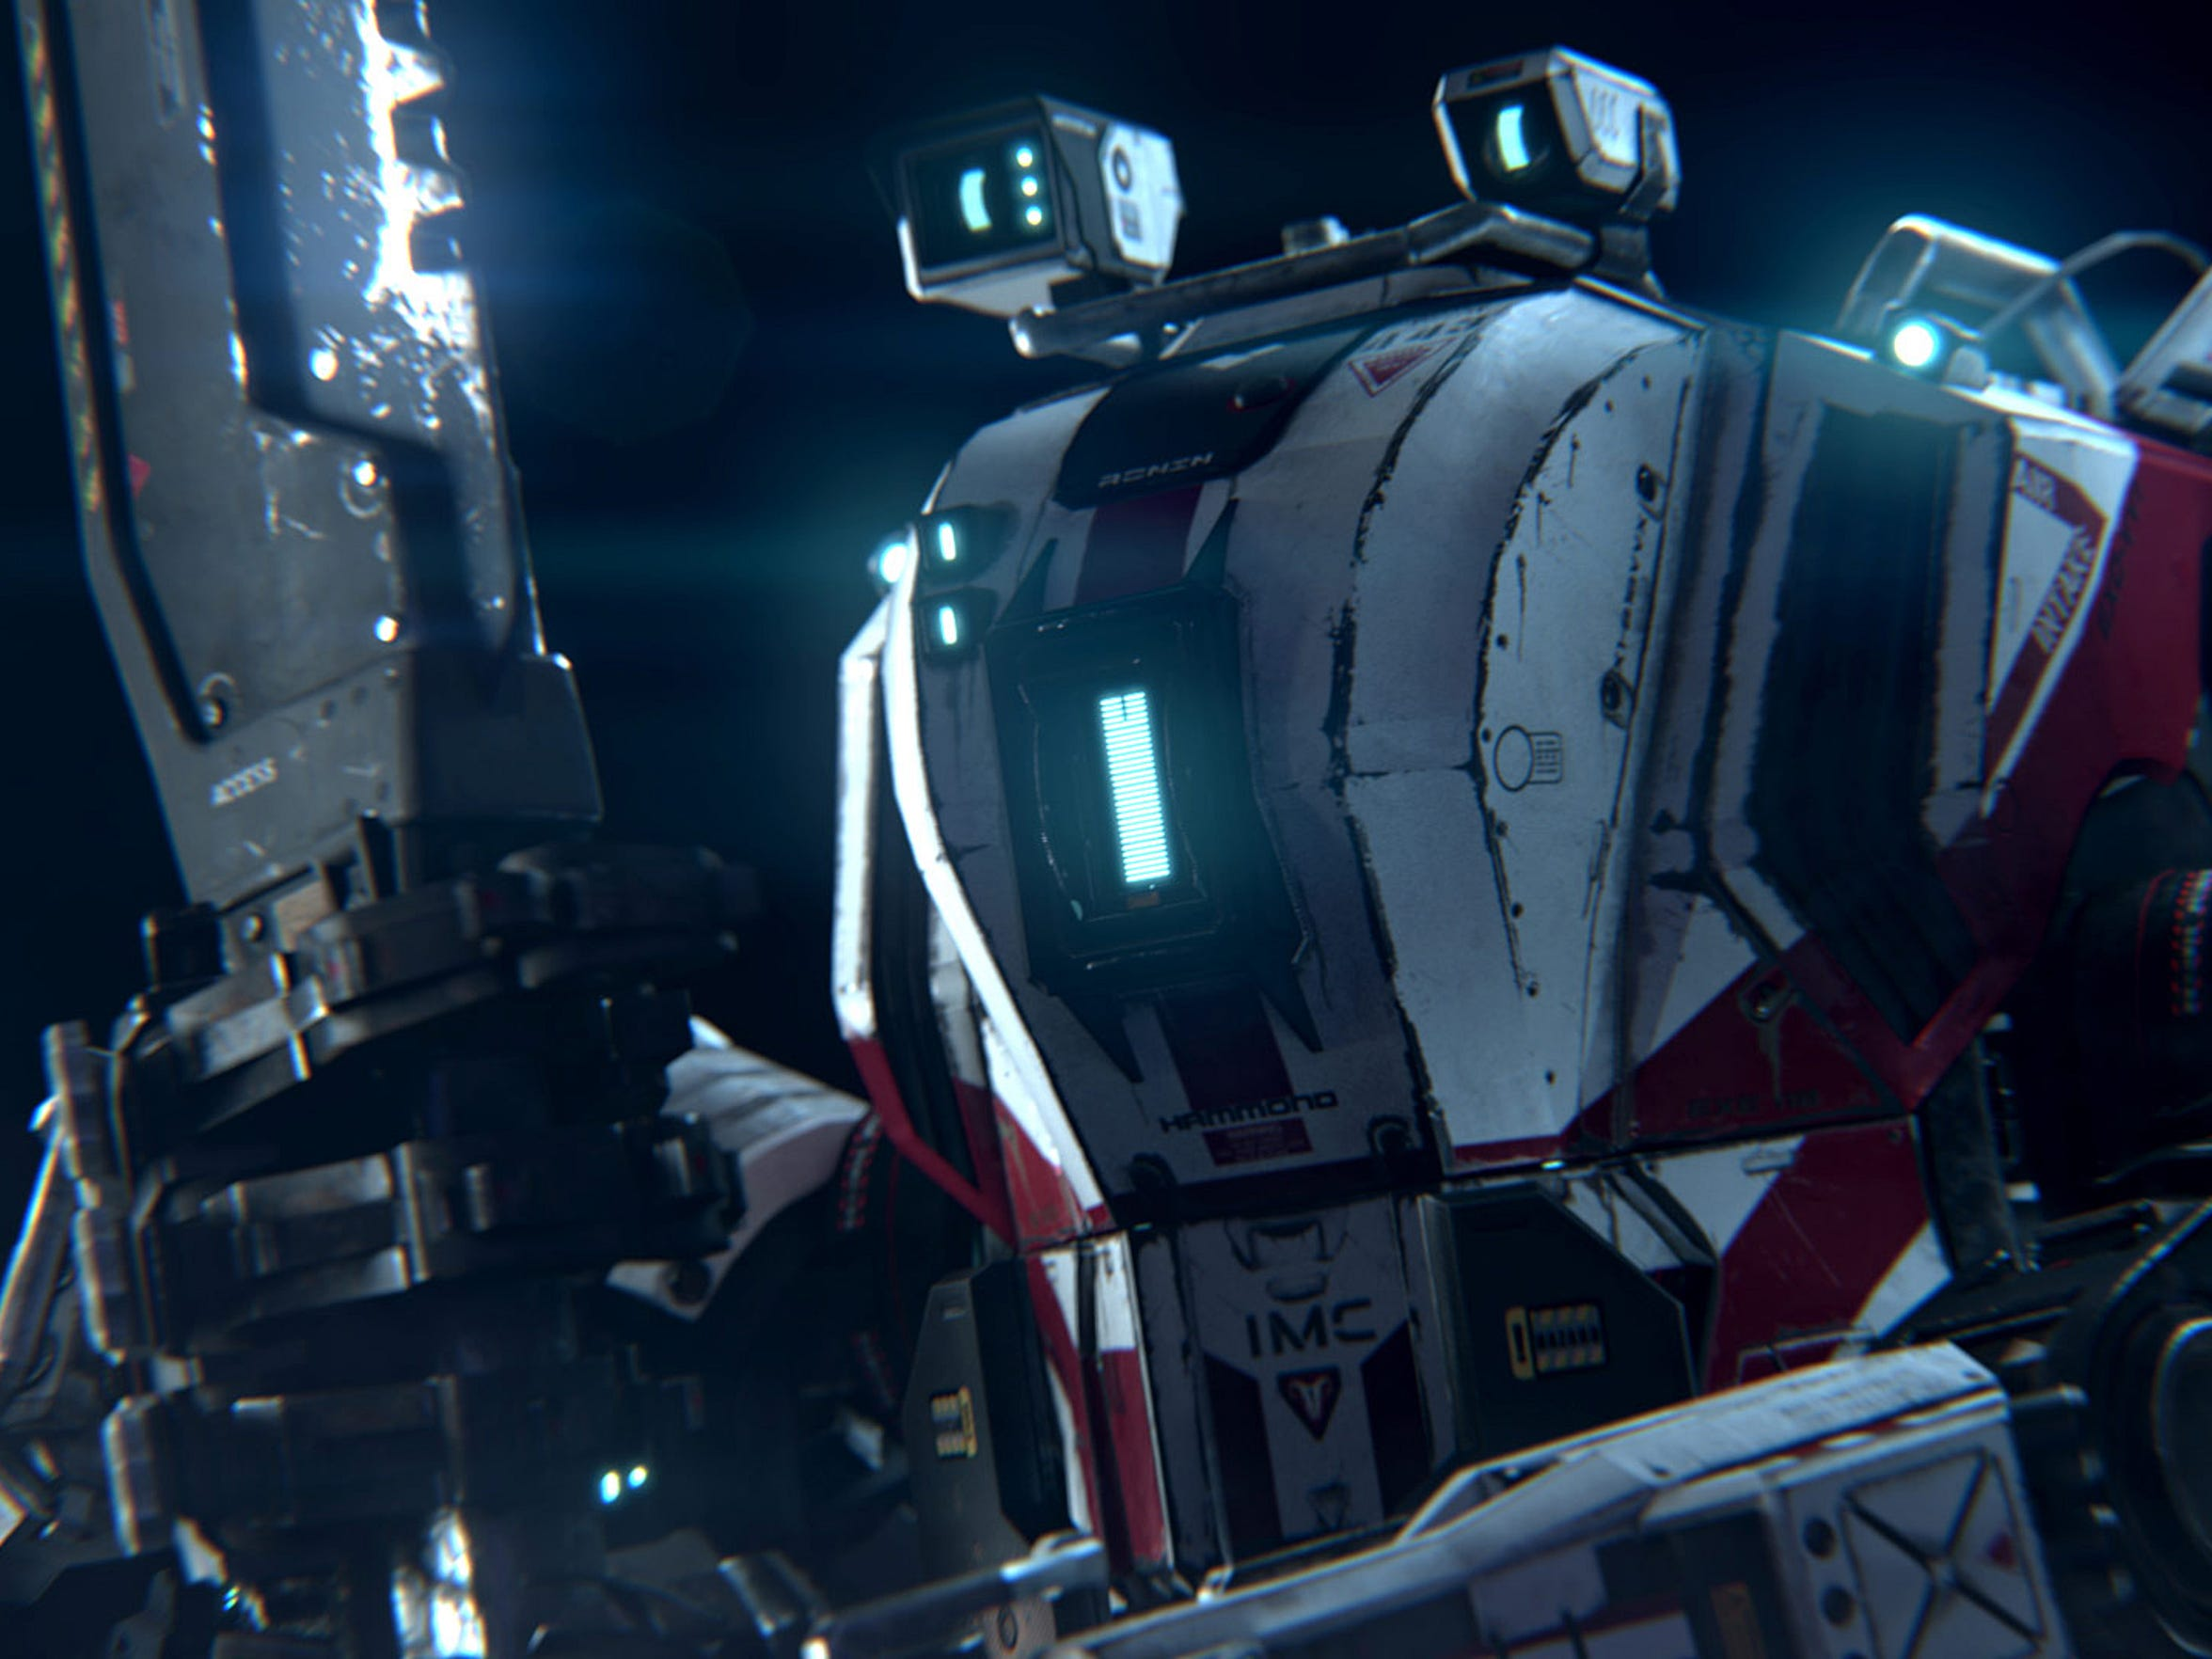 Say hello to someone's not so little friend in Titanfall